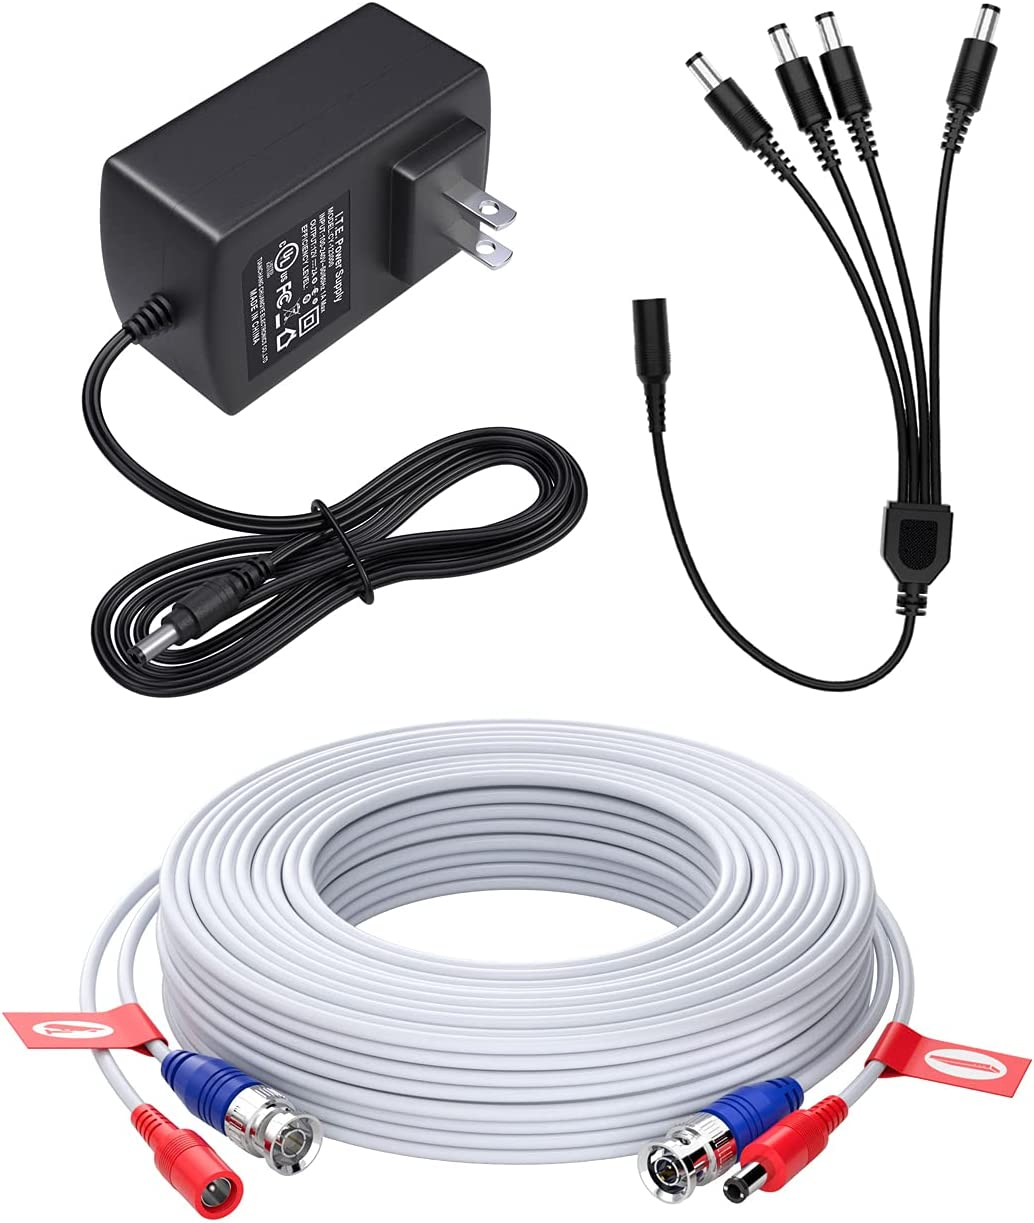 New mail order ZOSI DC 2A Power Adapter with 1 to Pa Splitter 4 + Max 85% OFF Cable